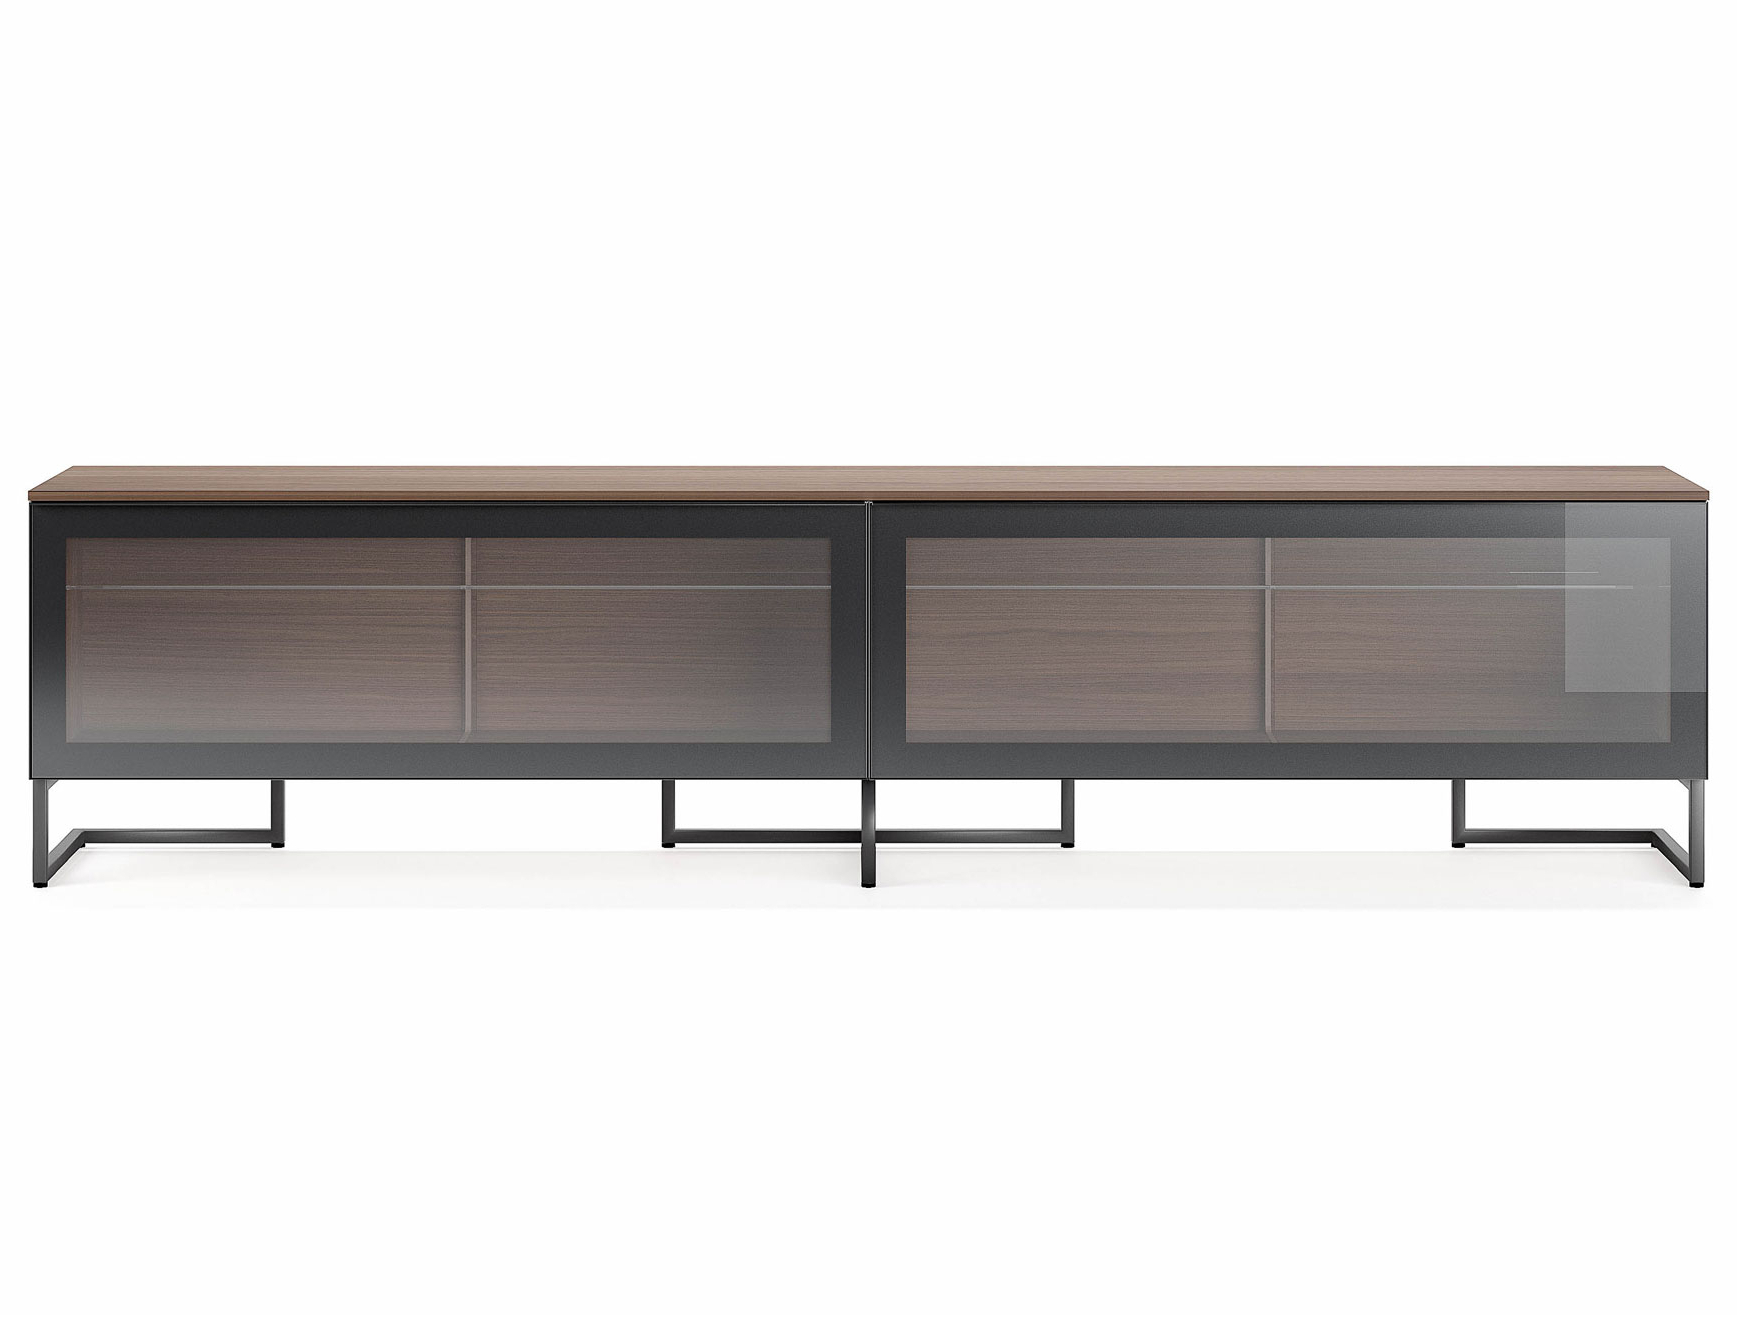 Newest Black Burnt Oak Sideboards Regarding Nella Vetrina Pianca Spazio Sgm240 Contemporary Italian Tv Unit In (Gallery 6 of 20)